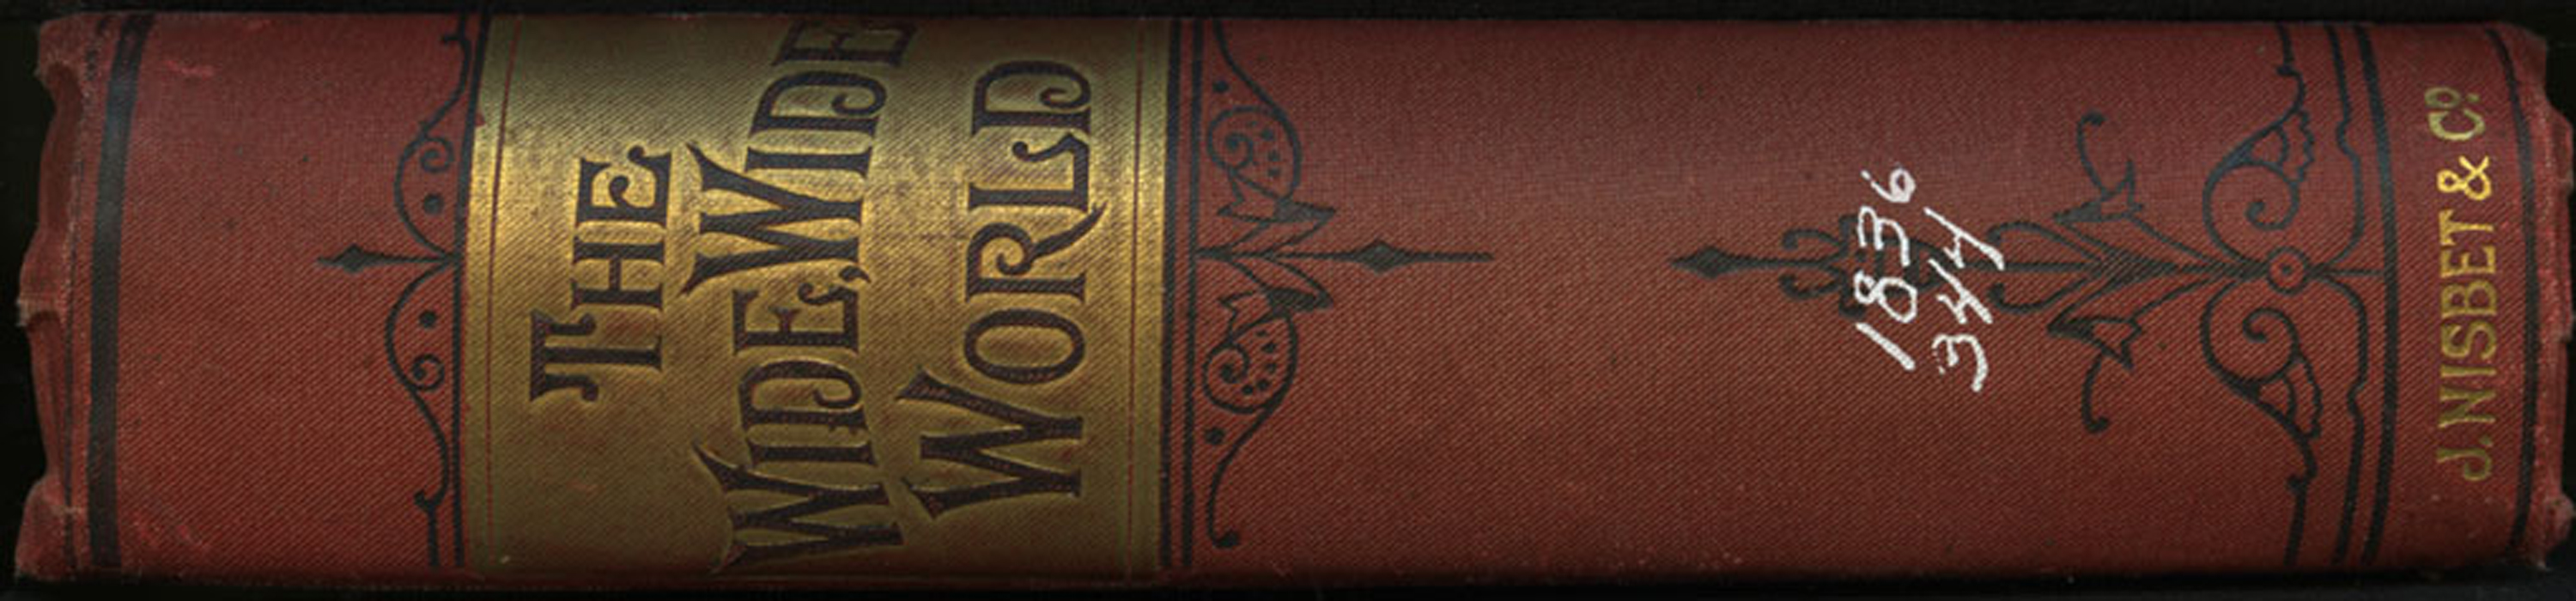 Spine of the [1893] James Nisbet Edition